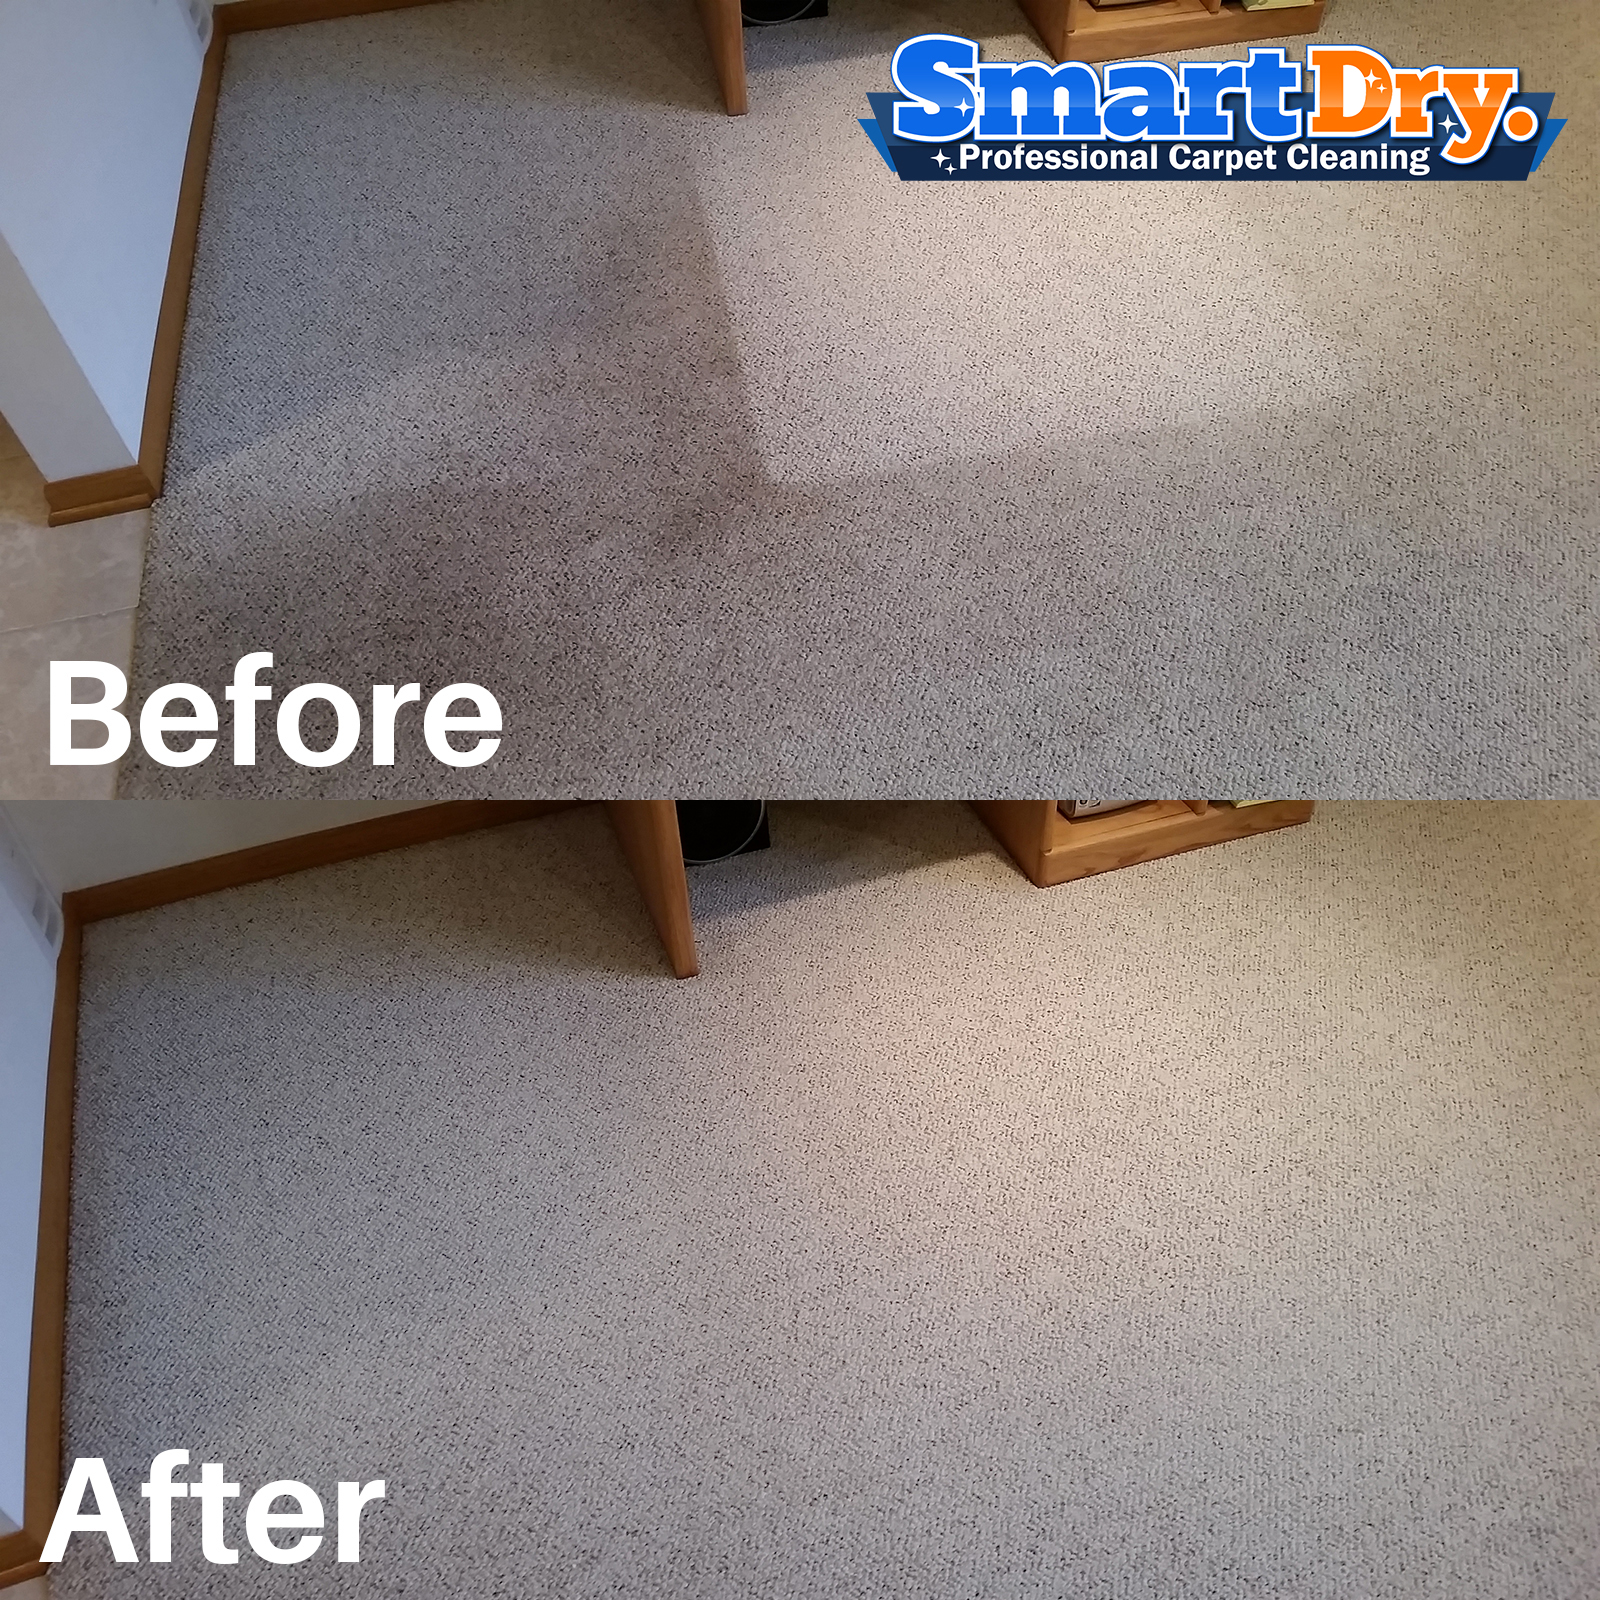 Carpet Cleaning San Diego Carpet Cleaners San Diego Ca